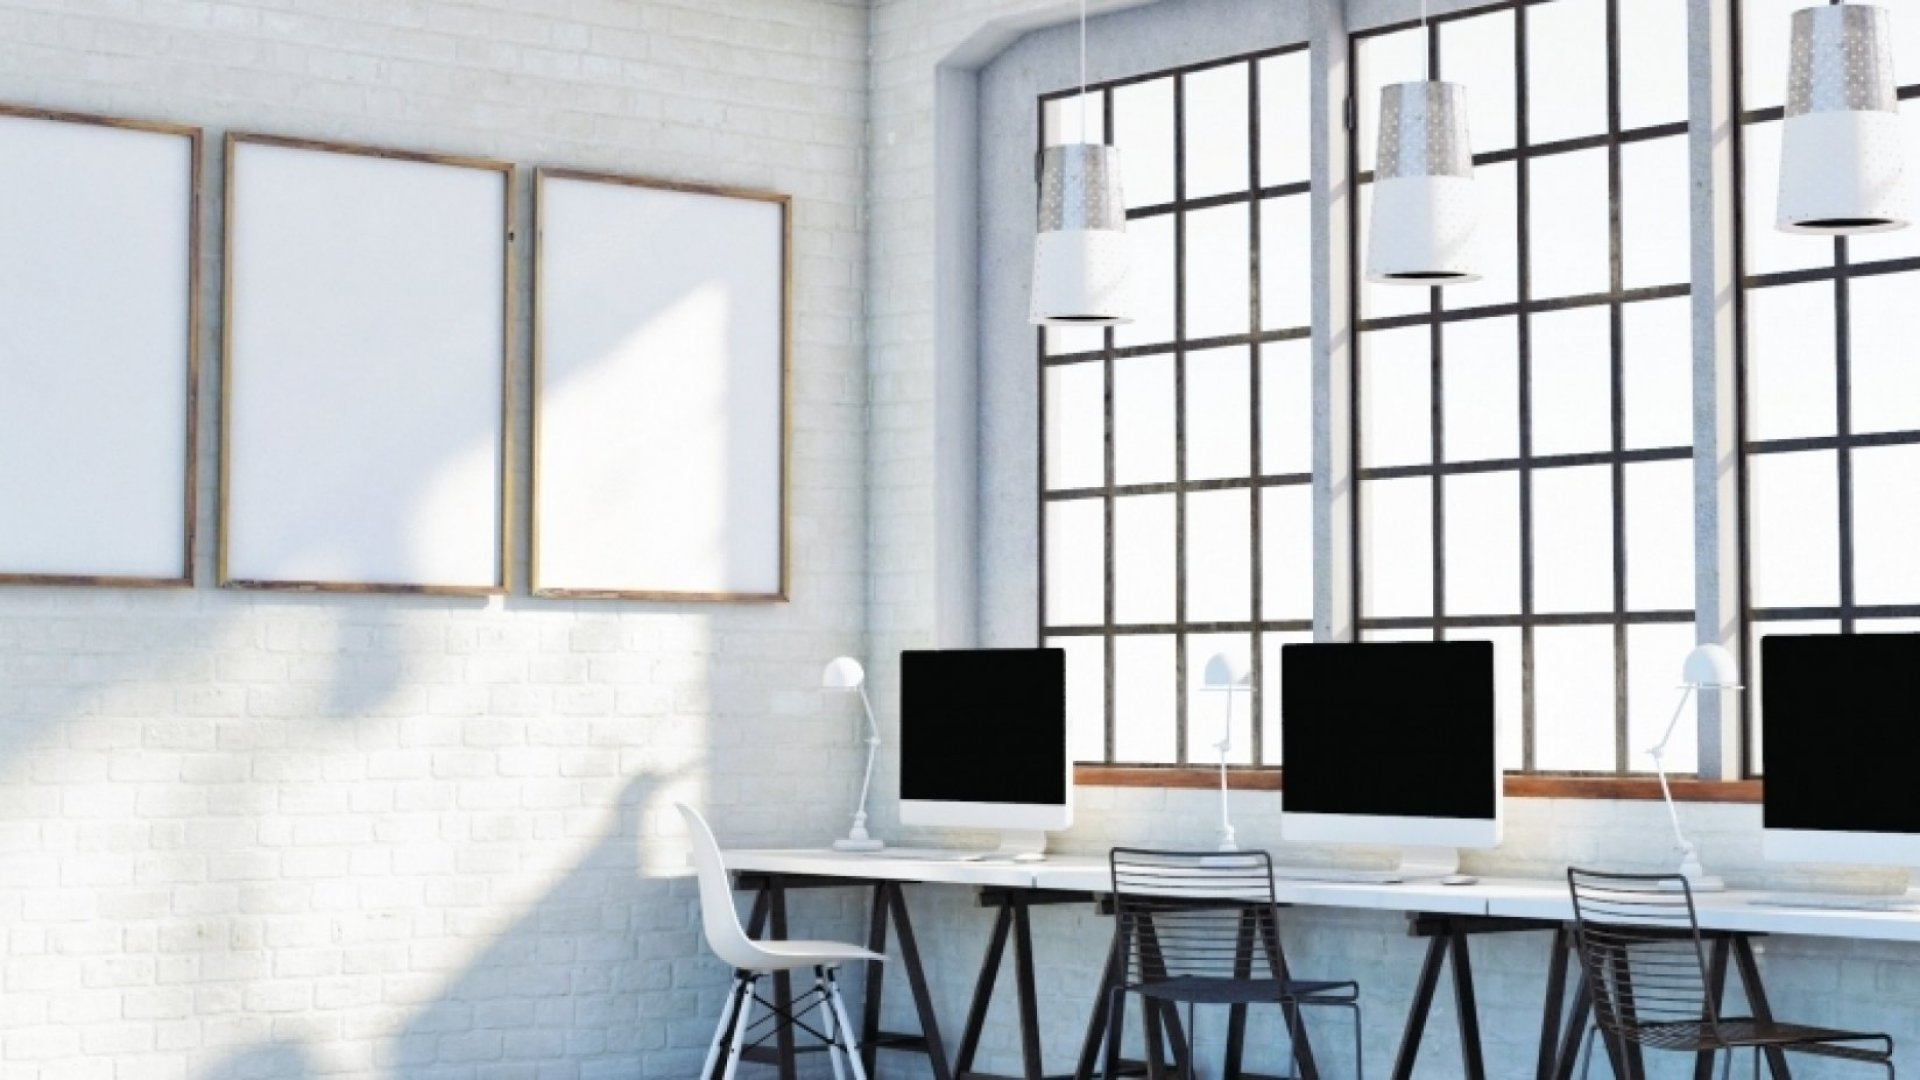 10 Workplace Trends That Will Change the Way You Manage